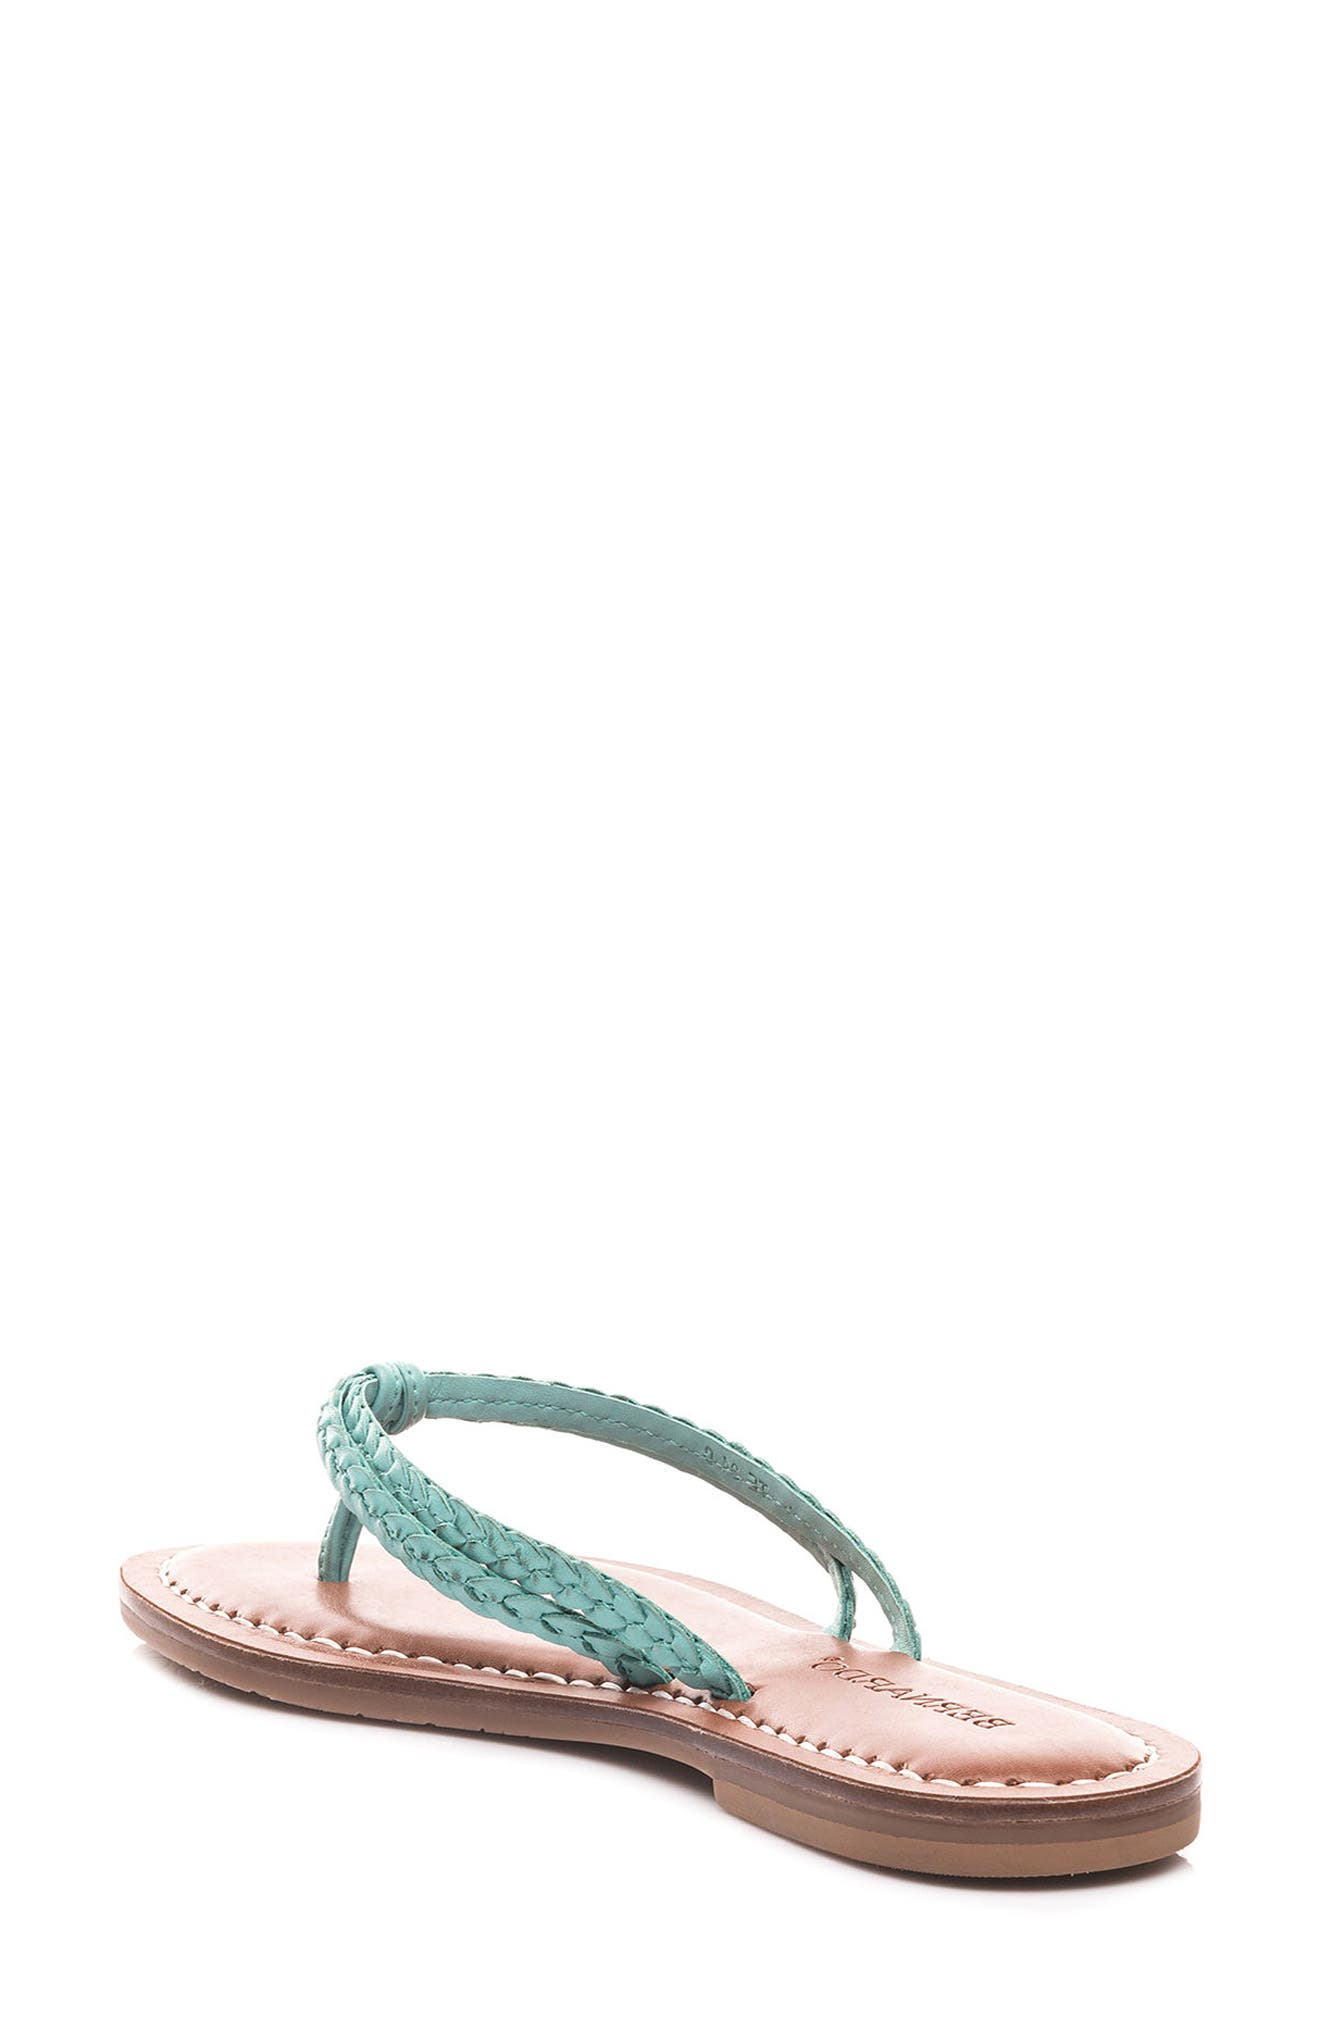 Bernardo Greta Braided Strap Sandal,                             Alternate thumbnail 10, color,